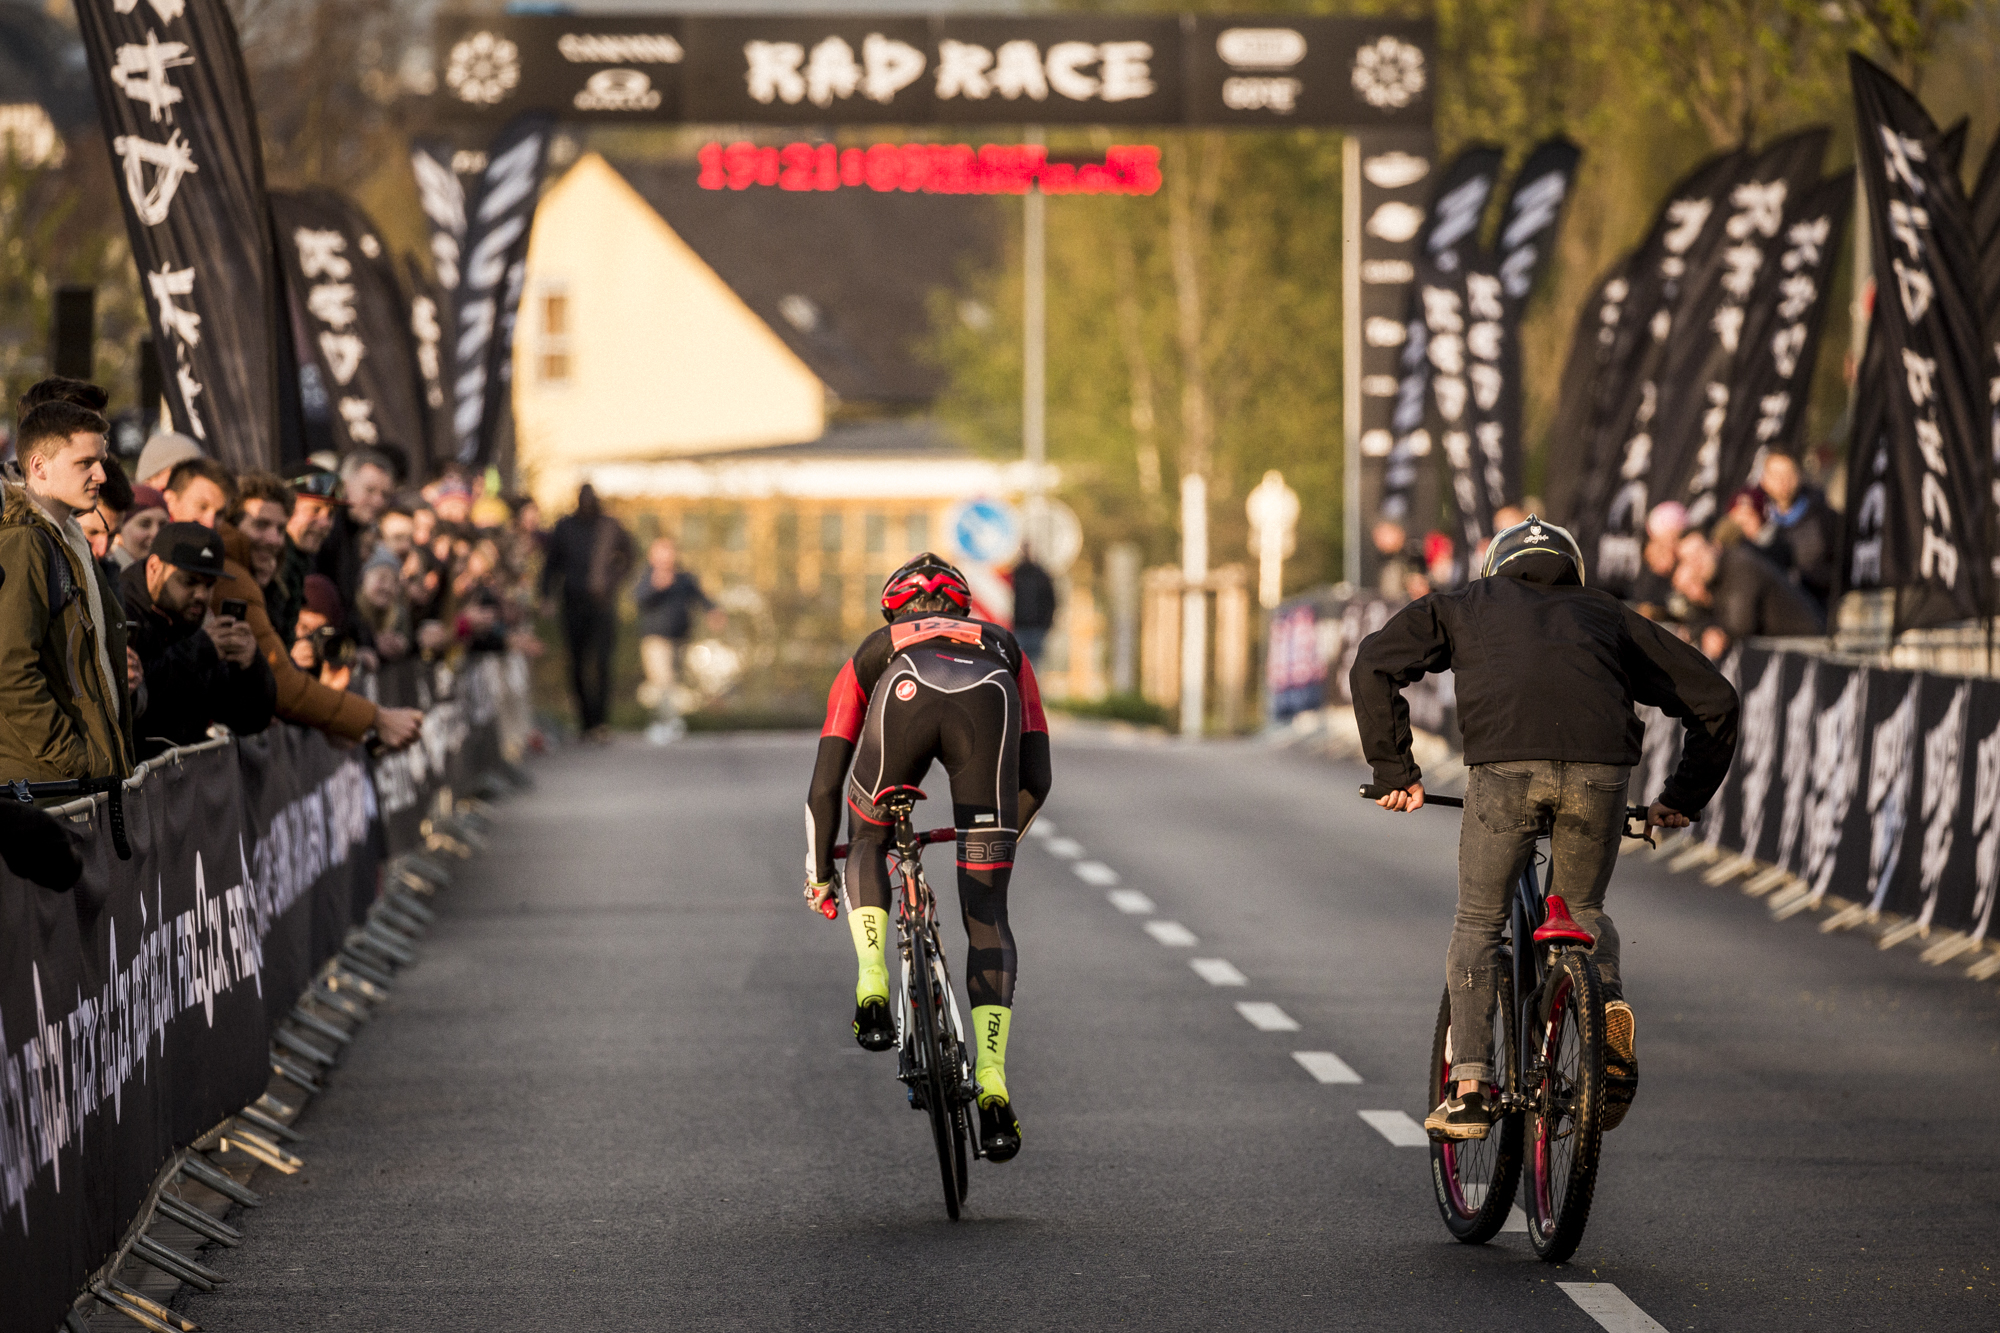 RadRace_Canyon_battle_2019_Arturs_Pavlovs (117 of 188).jpg